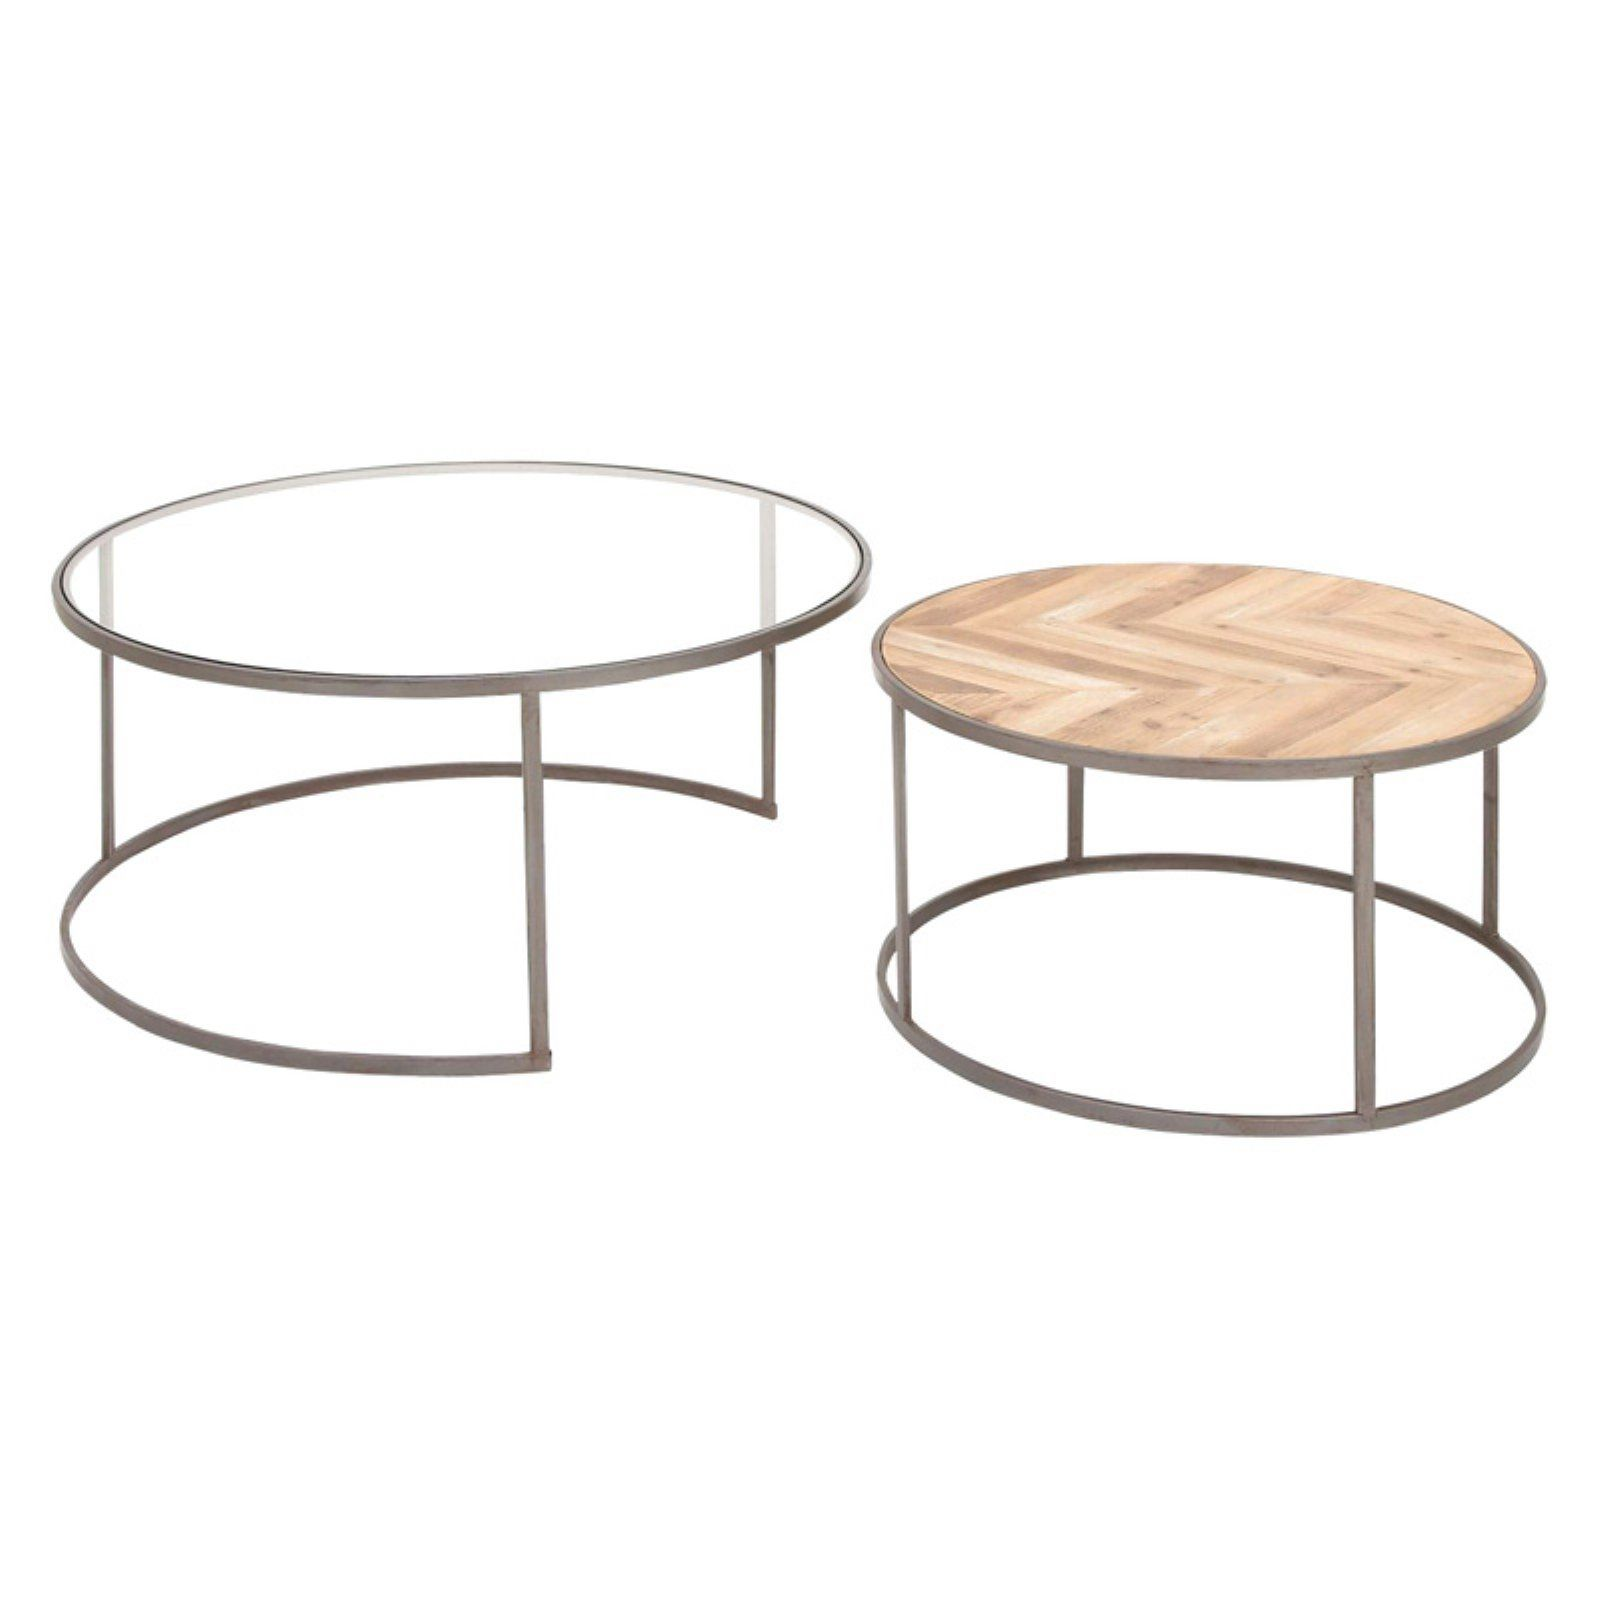 Decmode Round Coffee Table Set Of 2 In 2021 Round Coffee Table Sets Nesting Coffee Tables Coffee Table [ 1600 x 1600 Pixel ]